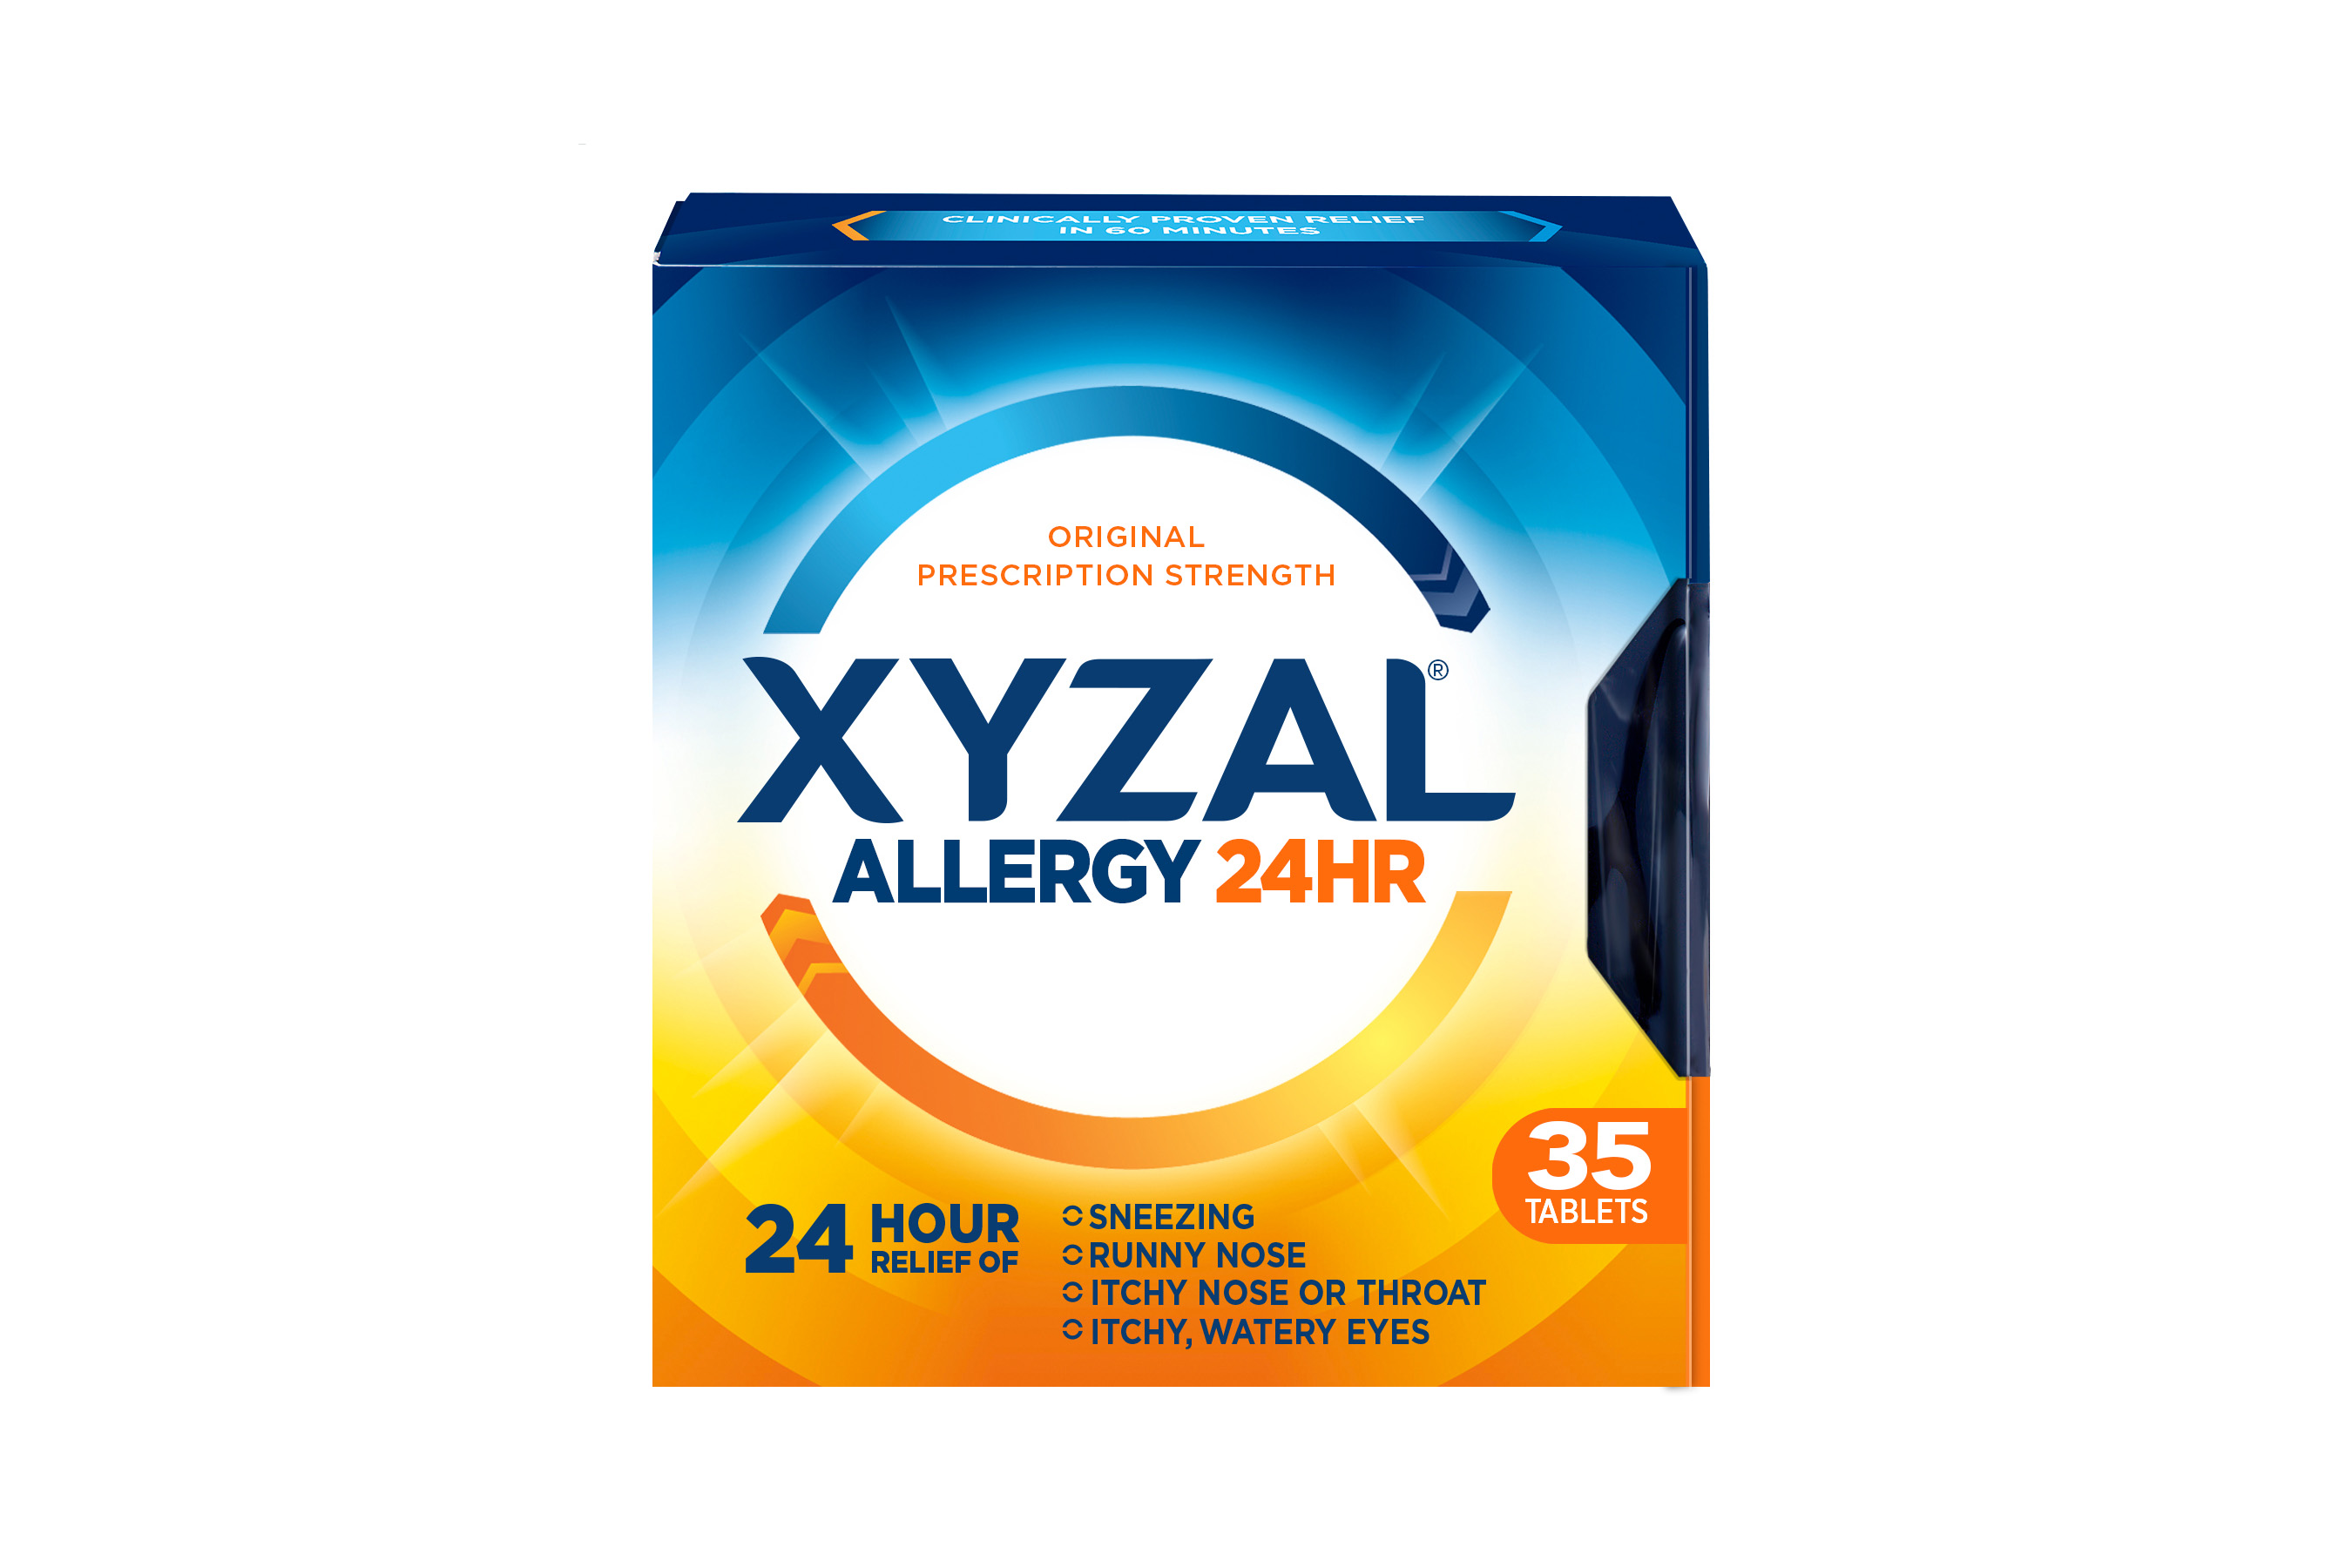 Xyzal® Allergy 24HR